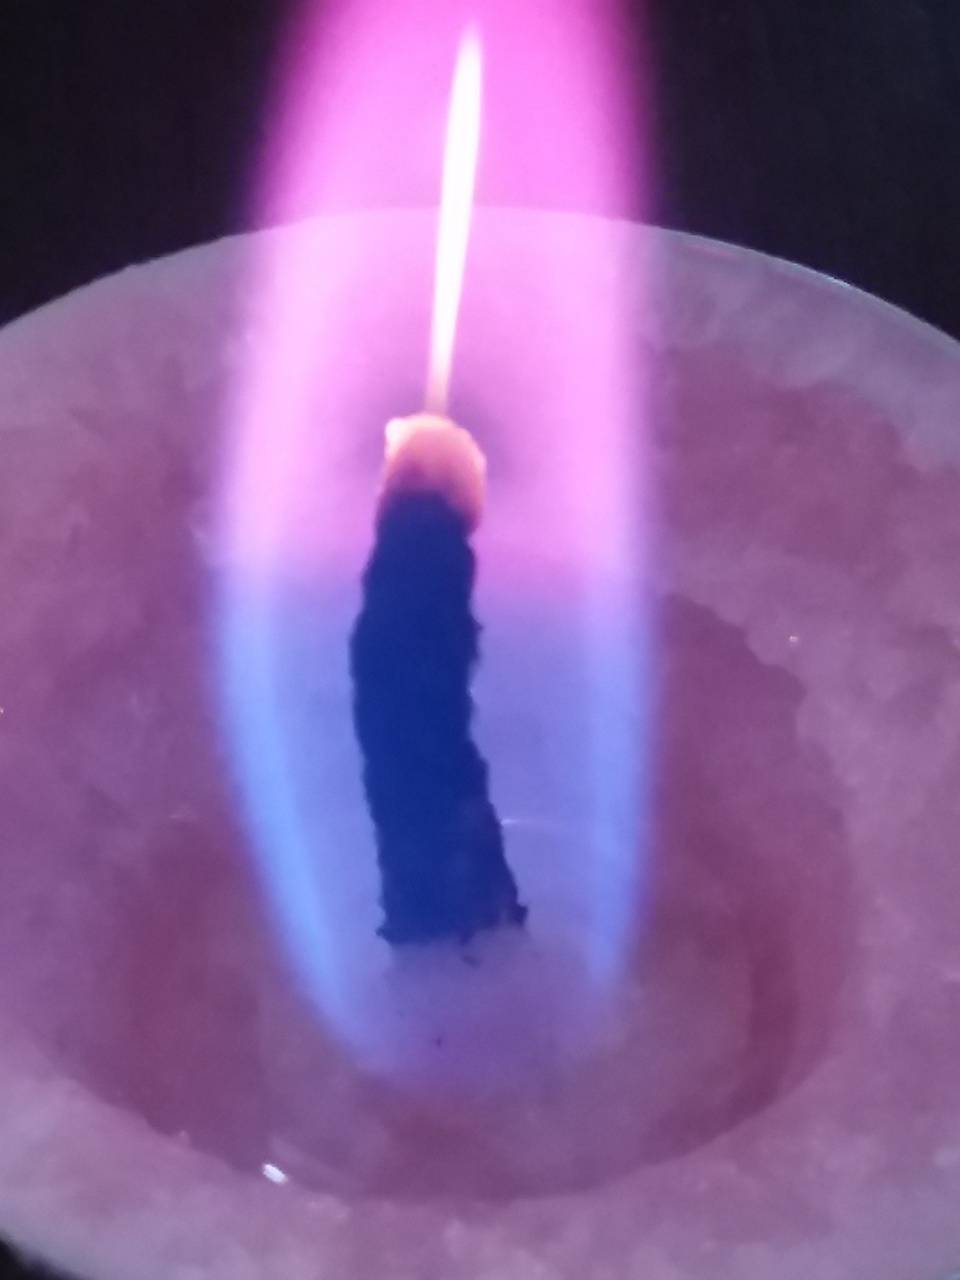 The colorful candle